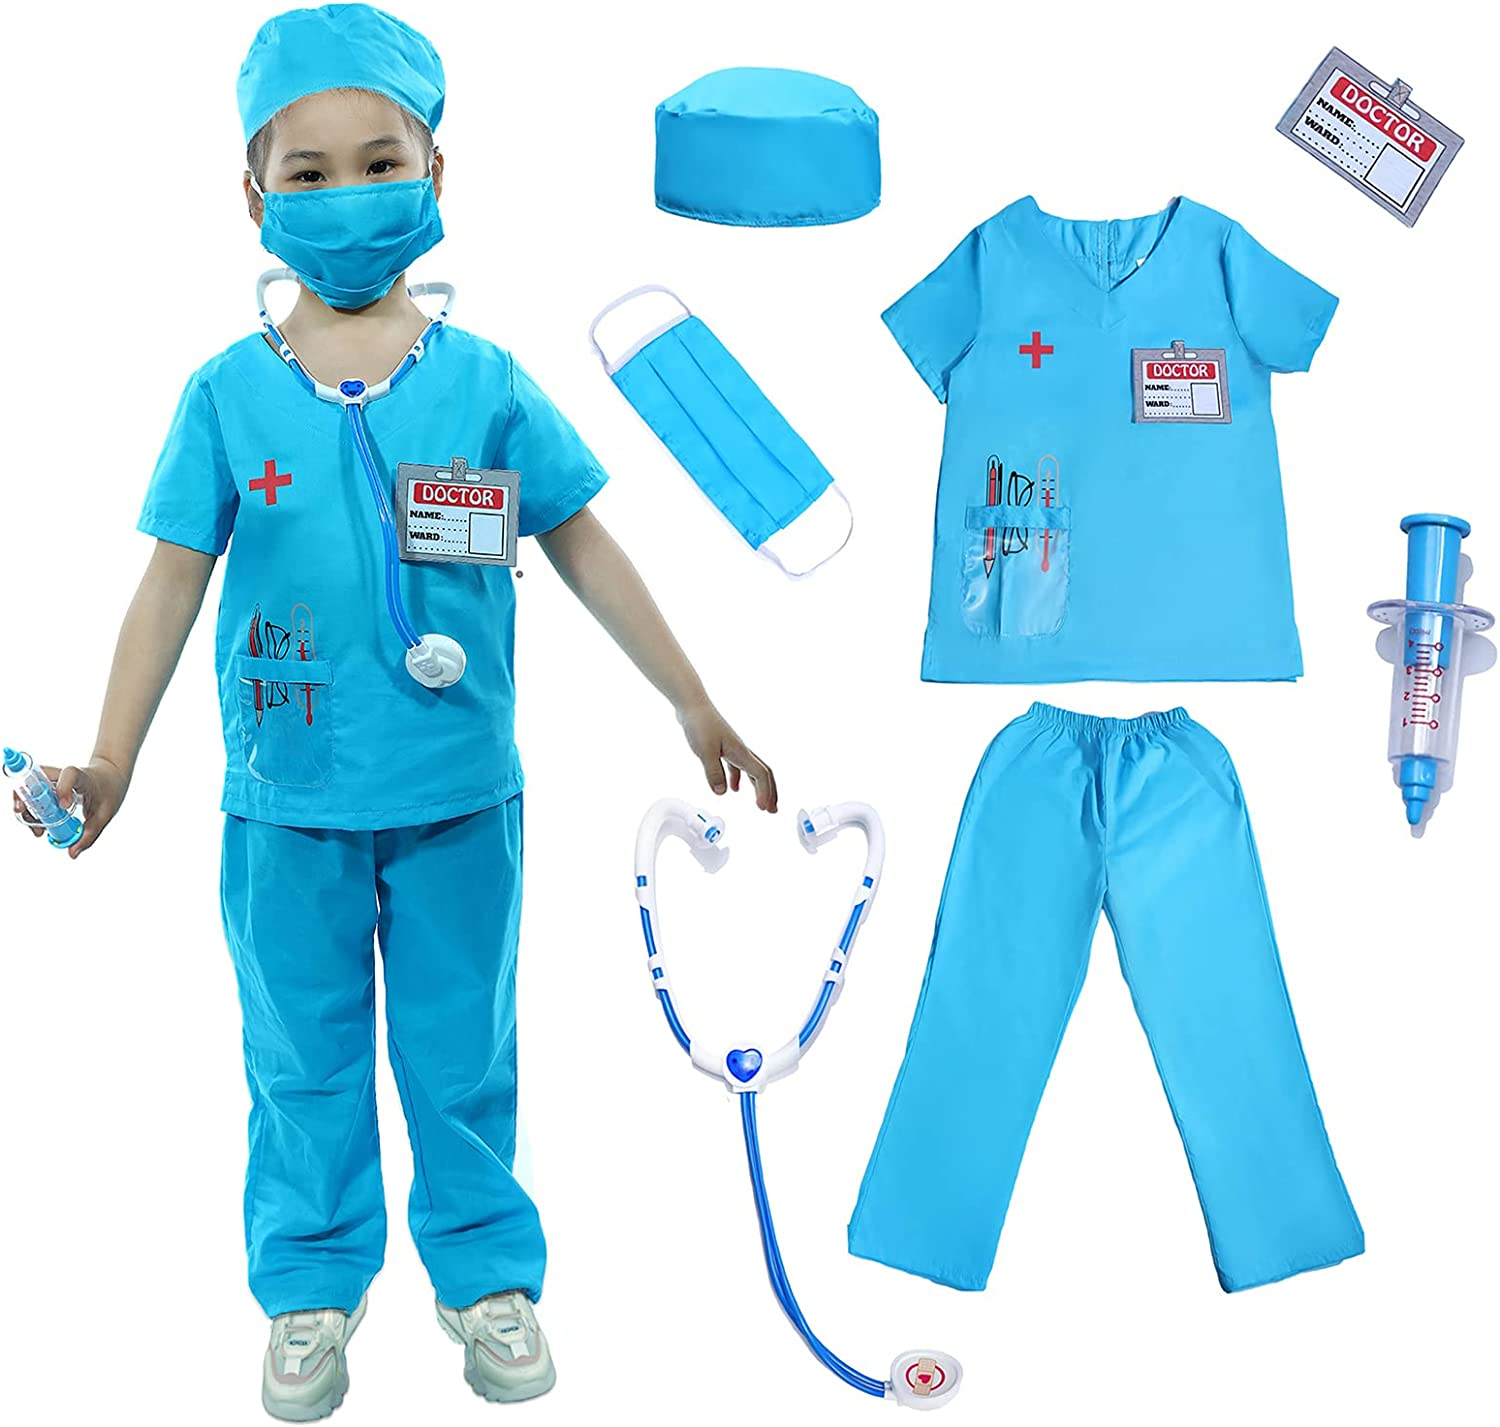 Kids Scrubs for Girls Doctor Costume 7pcs Play Max 77% OFF New Free Shipping Kit Wbesty -